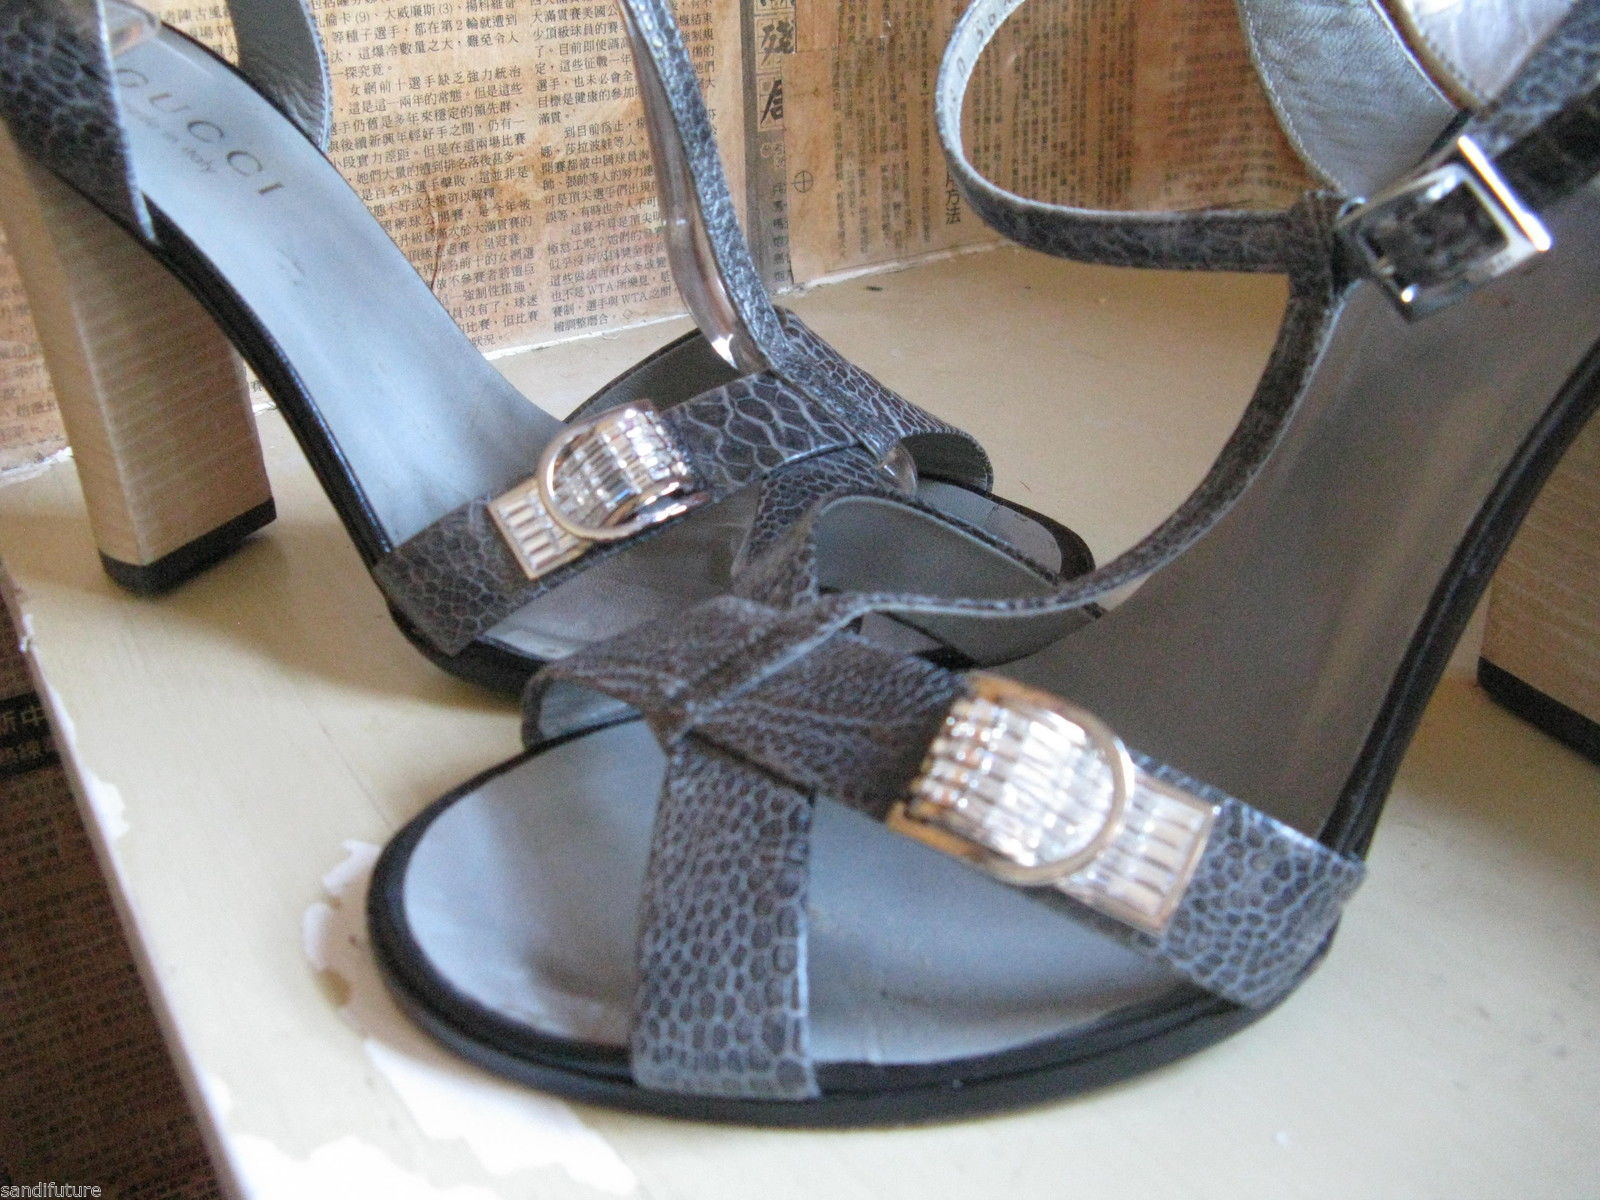 Gucci reptile snake rhinestones crystals bling sandals shoes heels 6.5 UK4 36.5